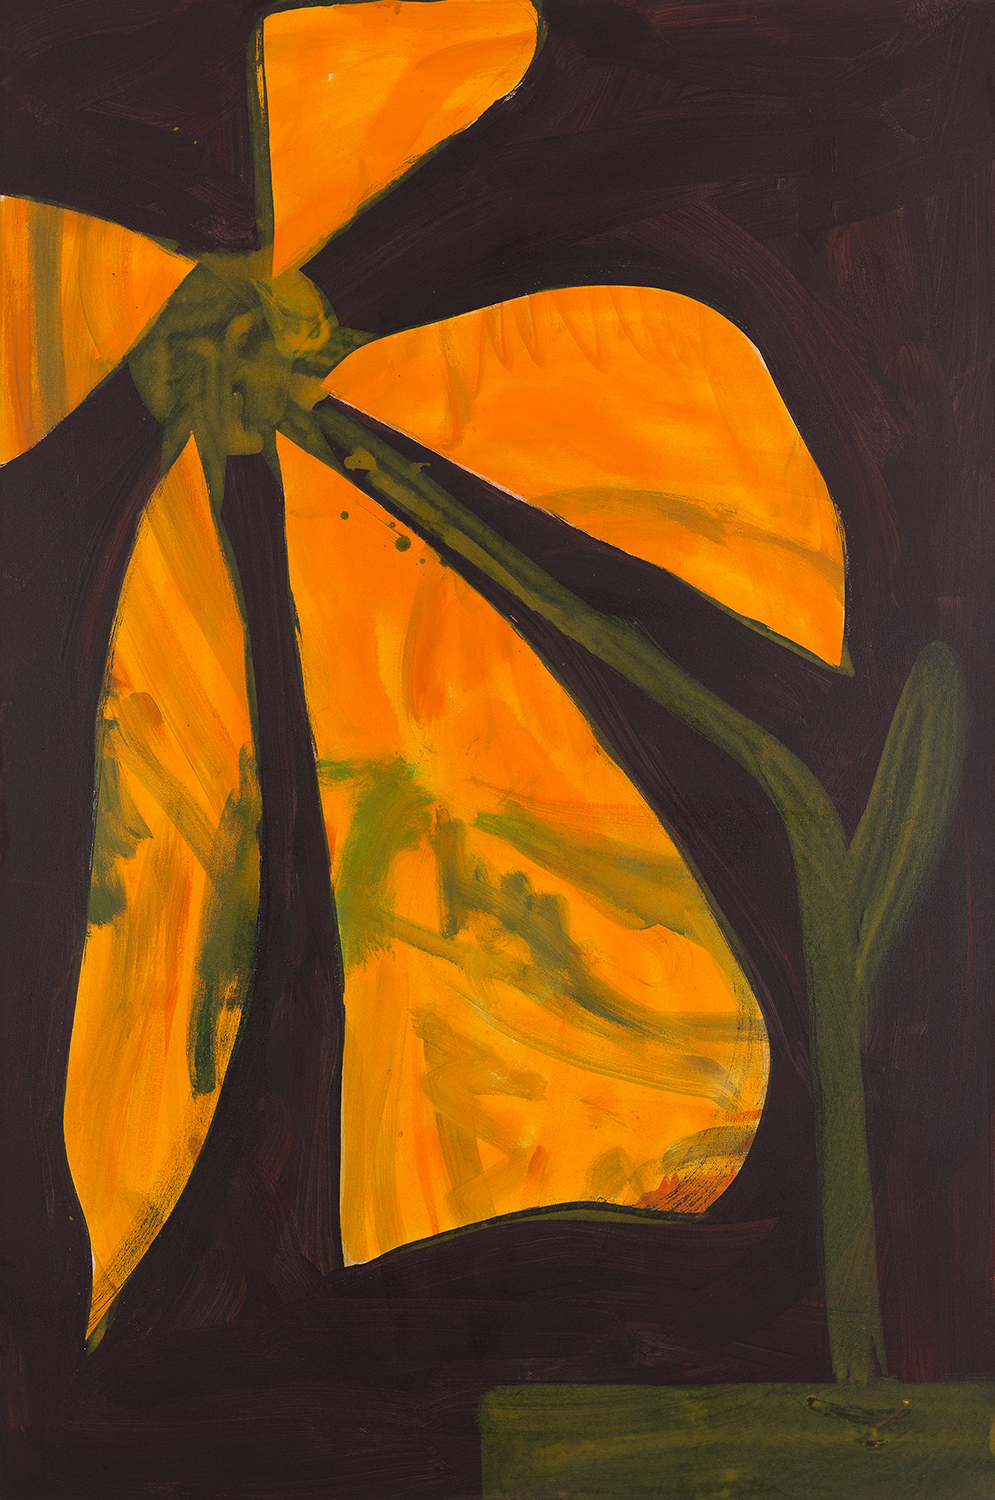 flower, orange, green, dark violett/black, 2011 - 2015